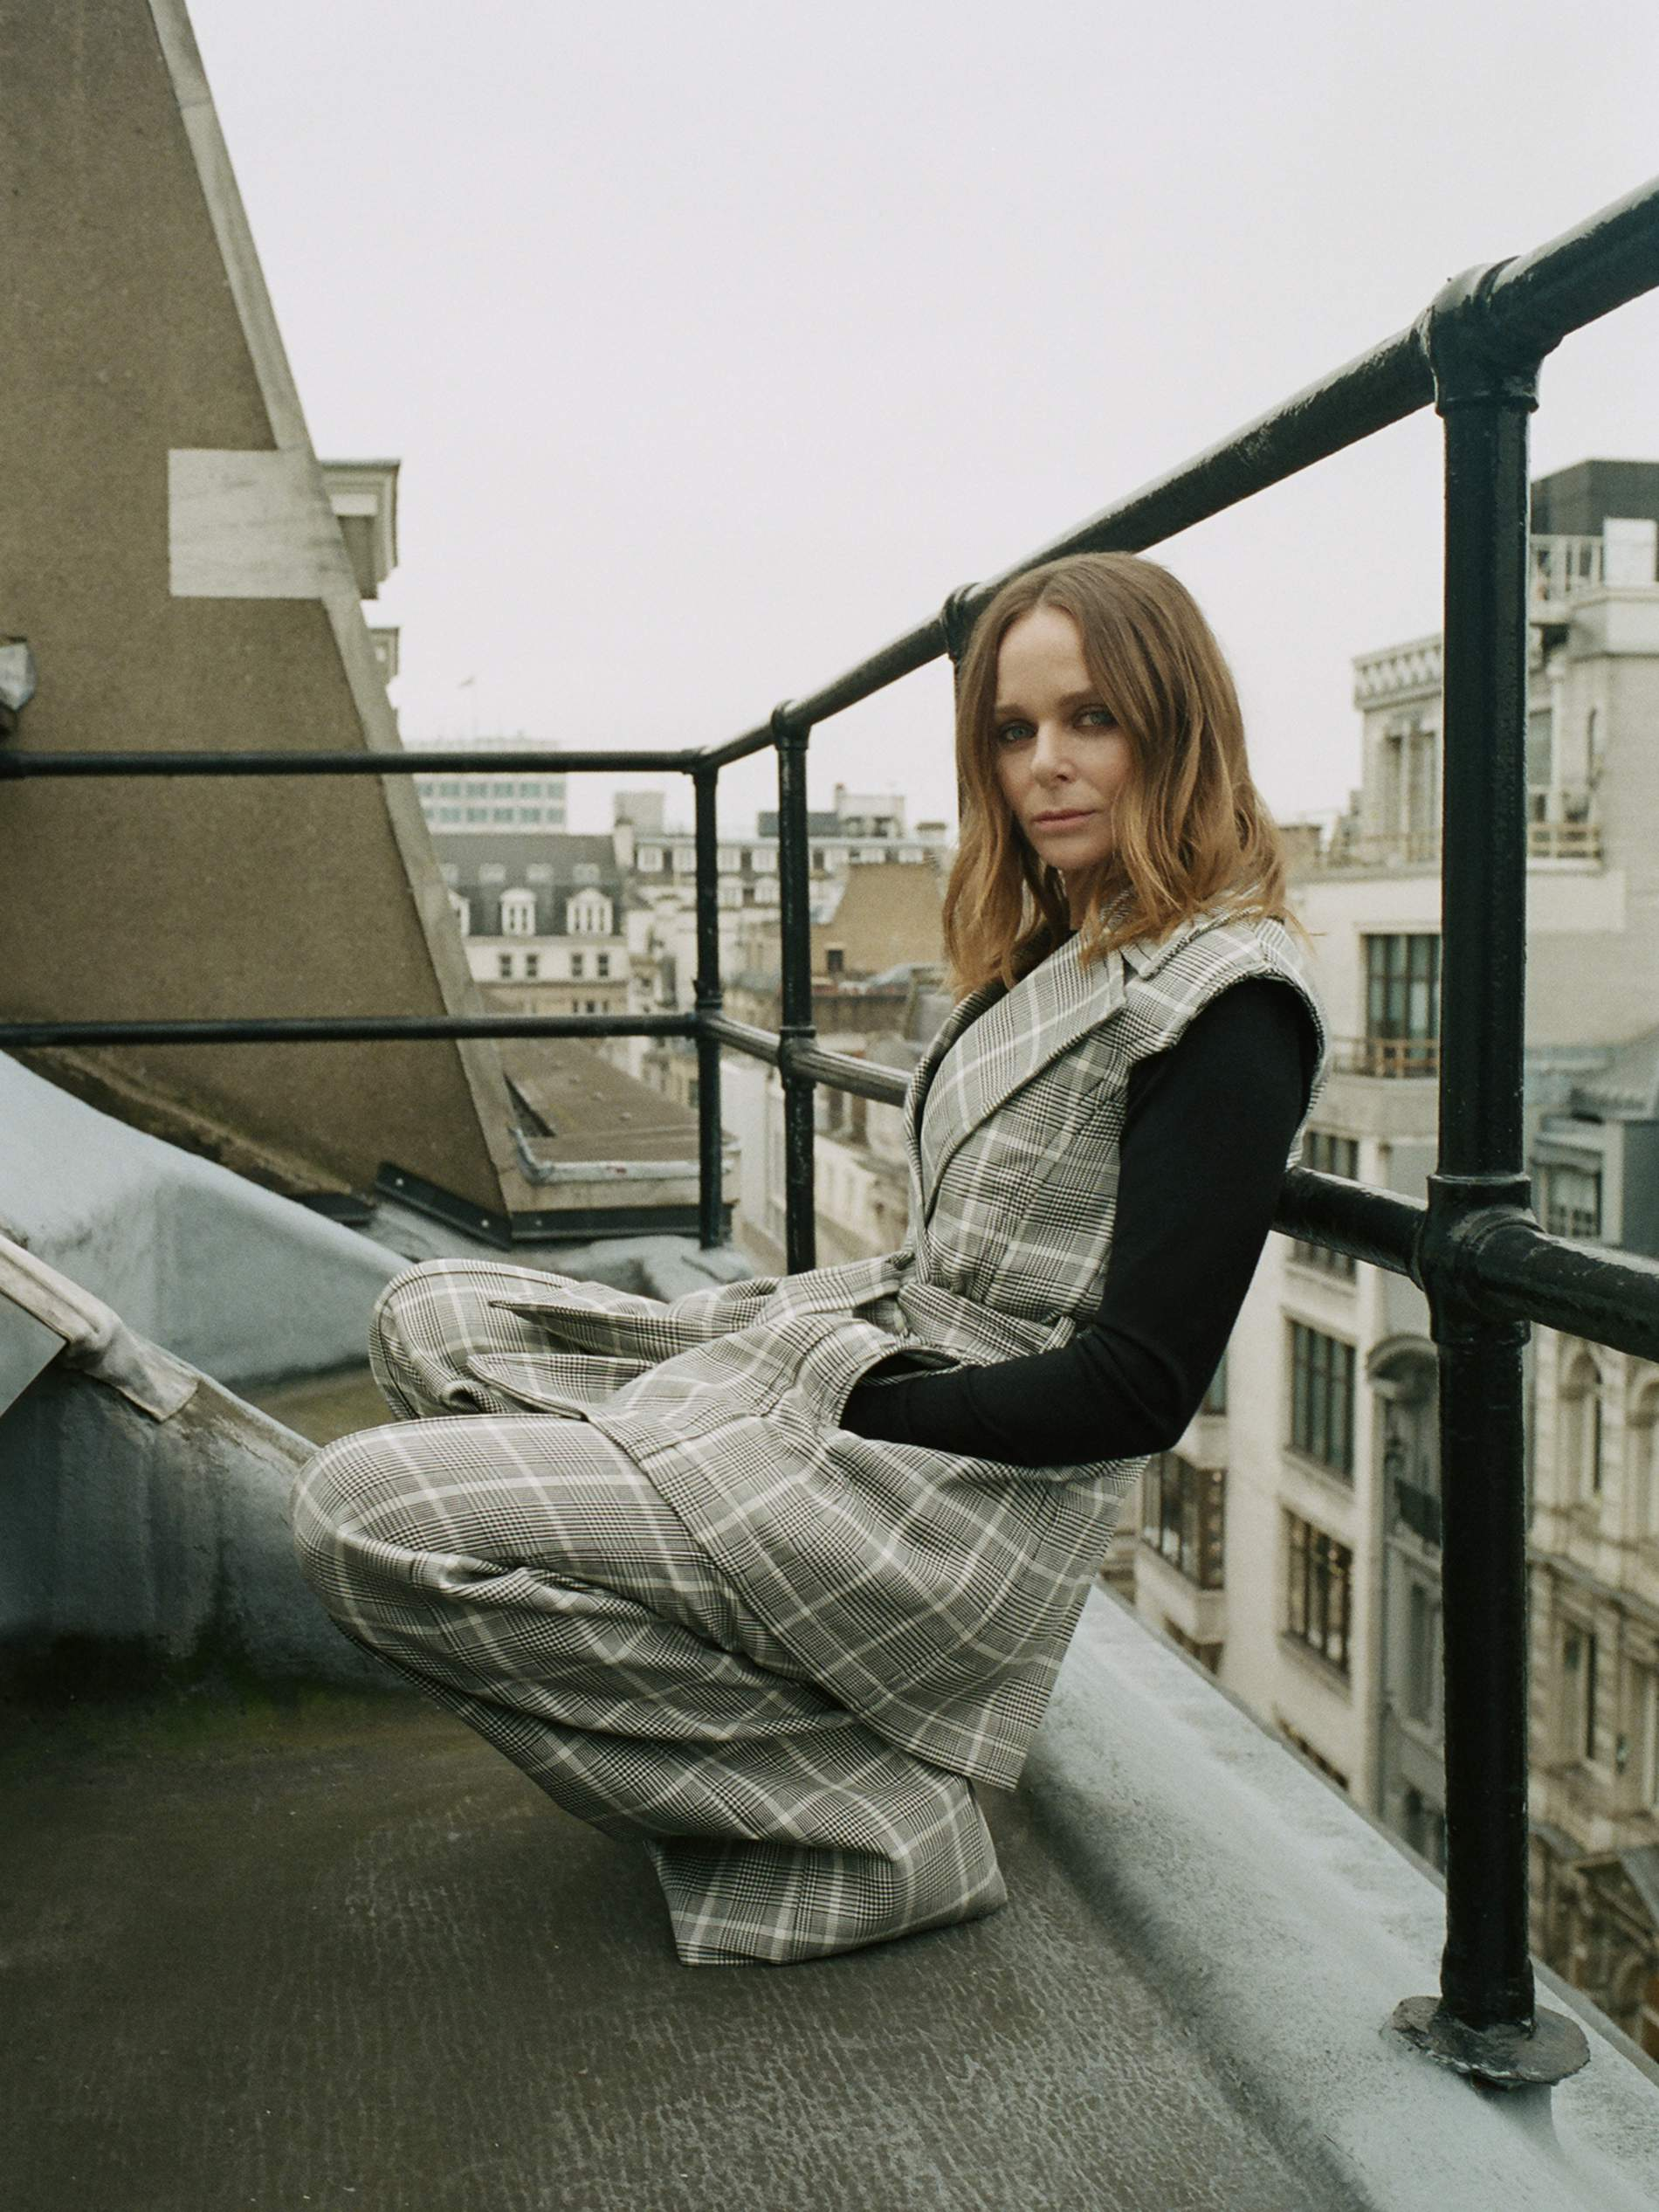 Stella McCartney takes menswear in non-classical direction. Image by Matthew Sprout.